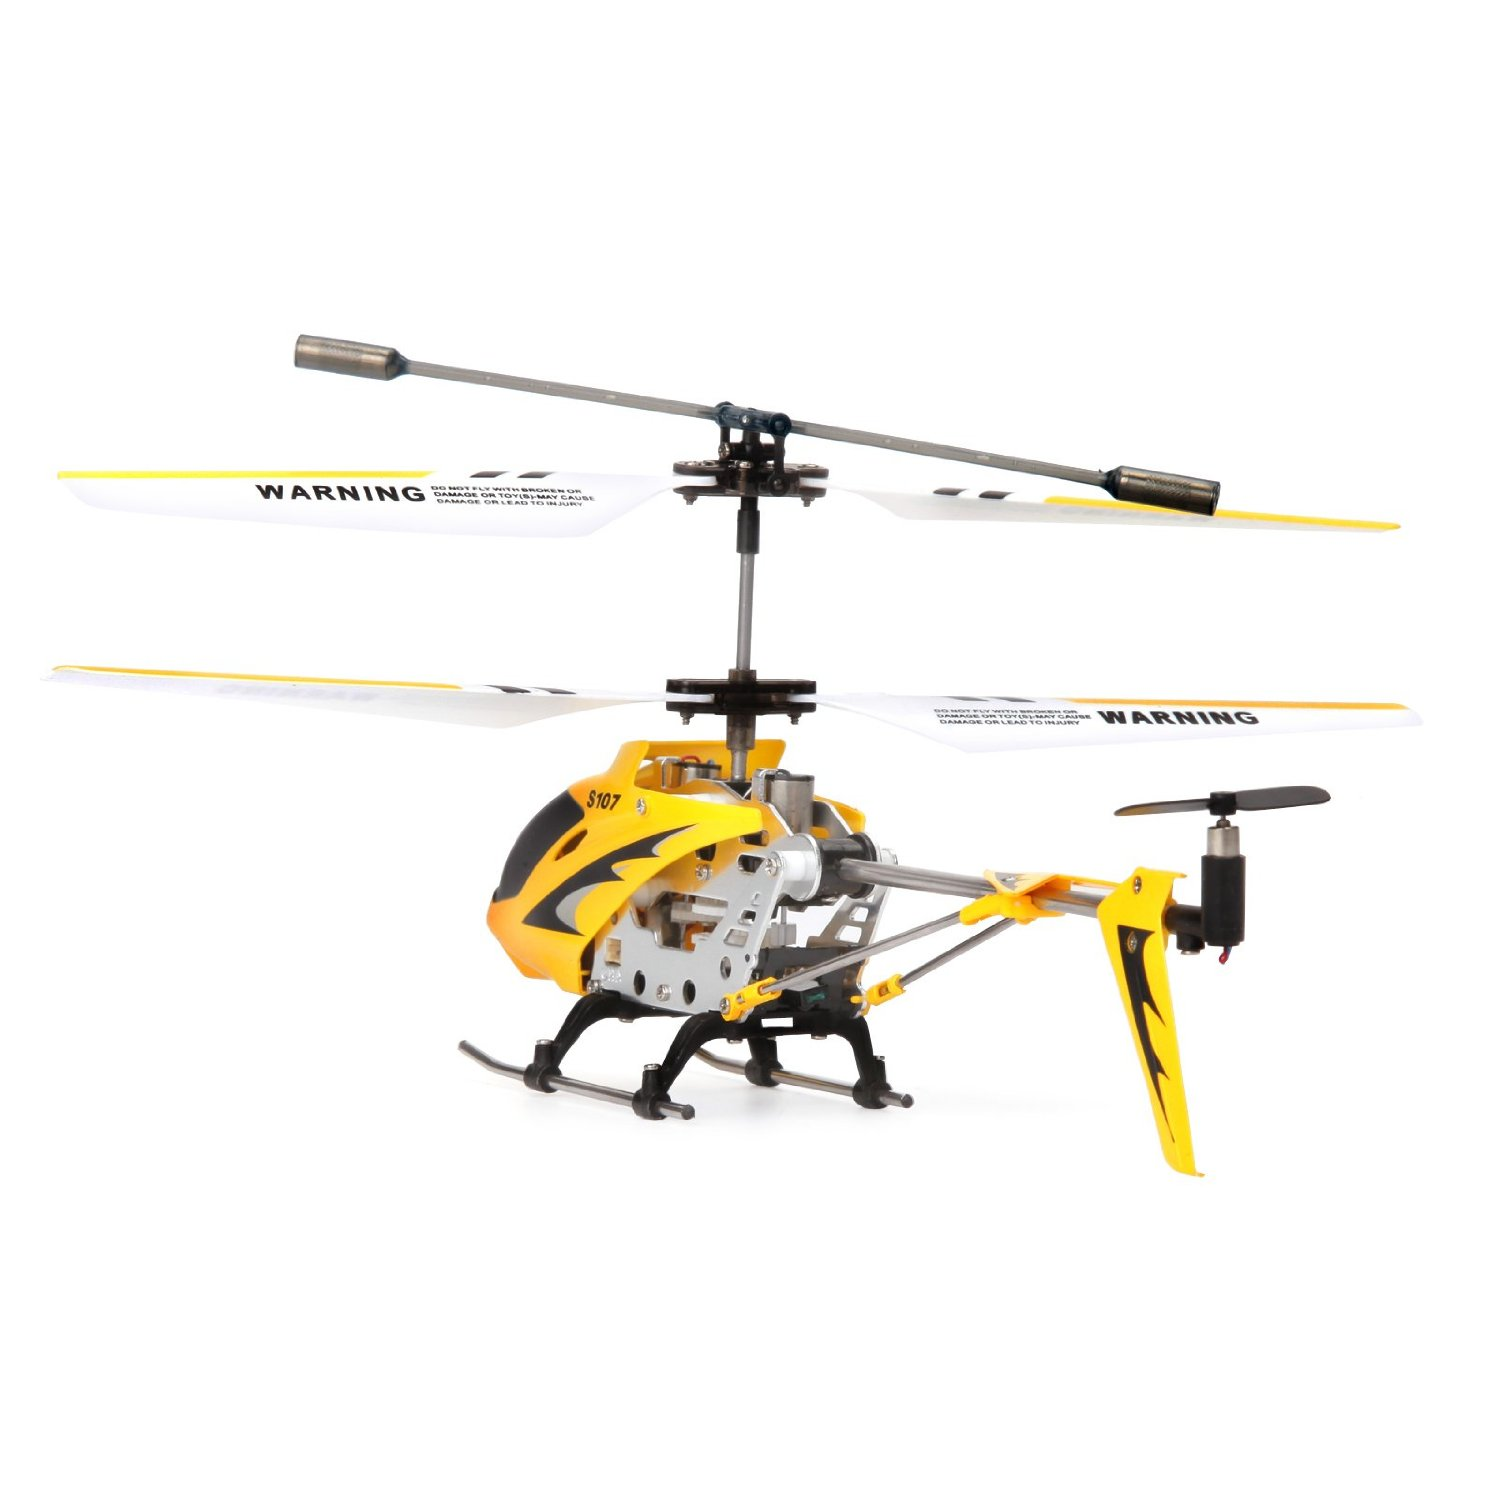 s107g helicopter parts with Syma S107s107g 3 5 Channel Rc Helicopter With Gyro on Syma S108 Parts Wiring Diagrams in addition Cheerwing S107 S107g 3ch 3 5ch Mini Alloy Remote Control Rc Helicopter Gyro additionally 252774620926 additionally 32647208180 moreover B.